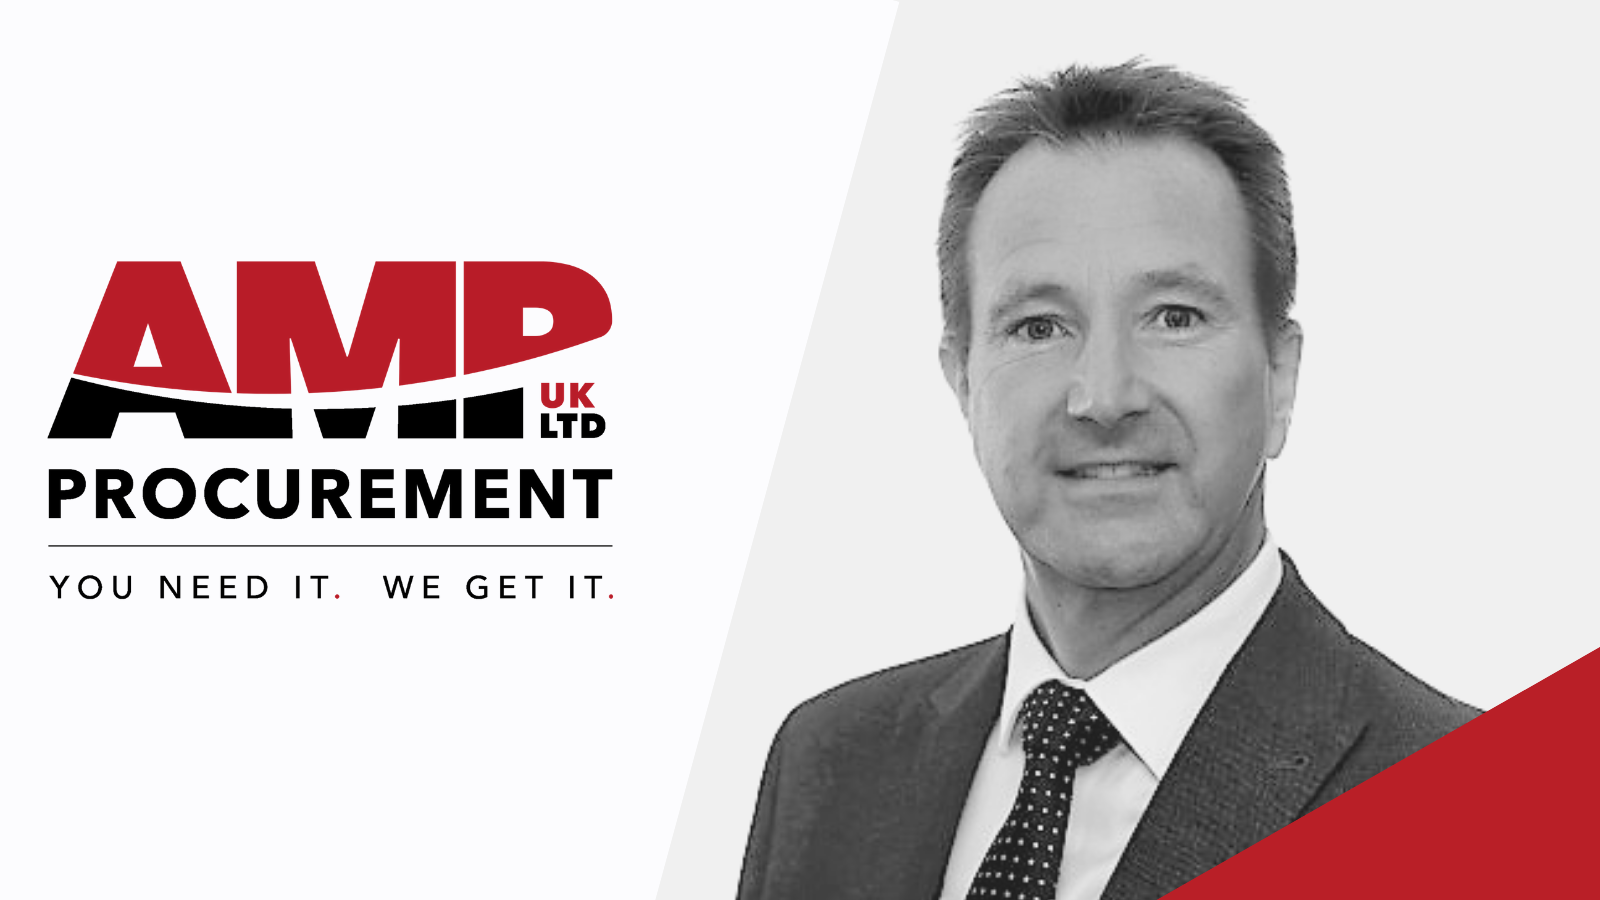 Introducing The New AMP Procurement CEO – Sandy Sheehan-Hepburn